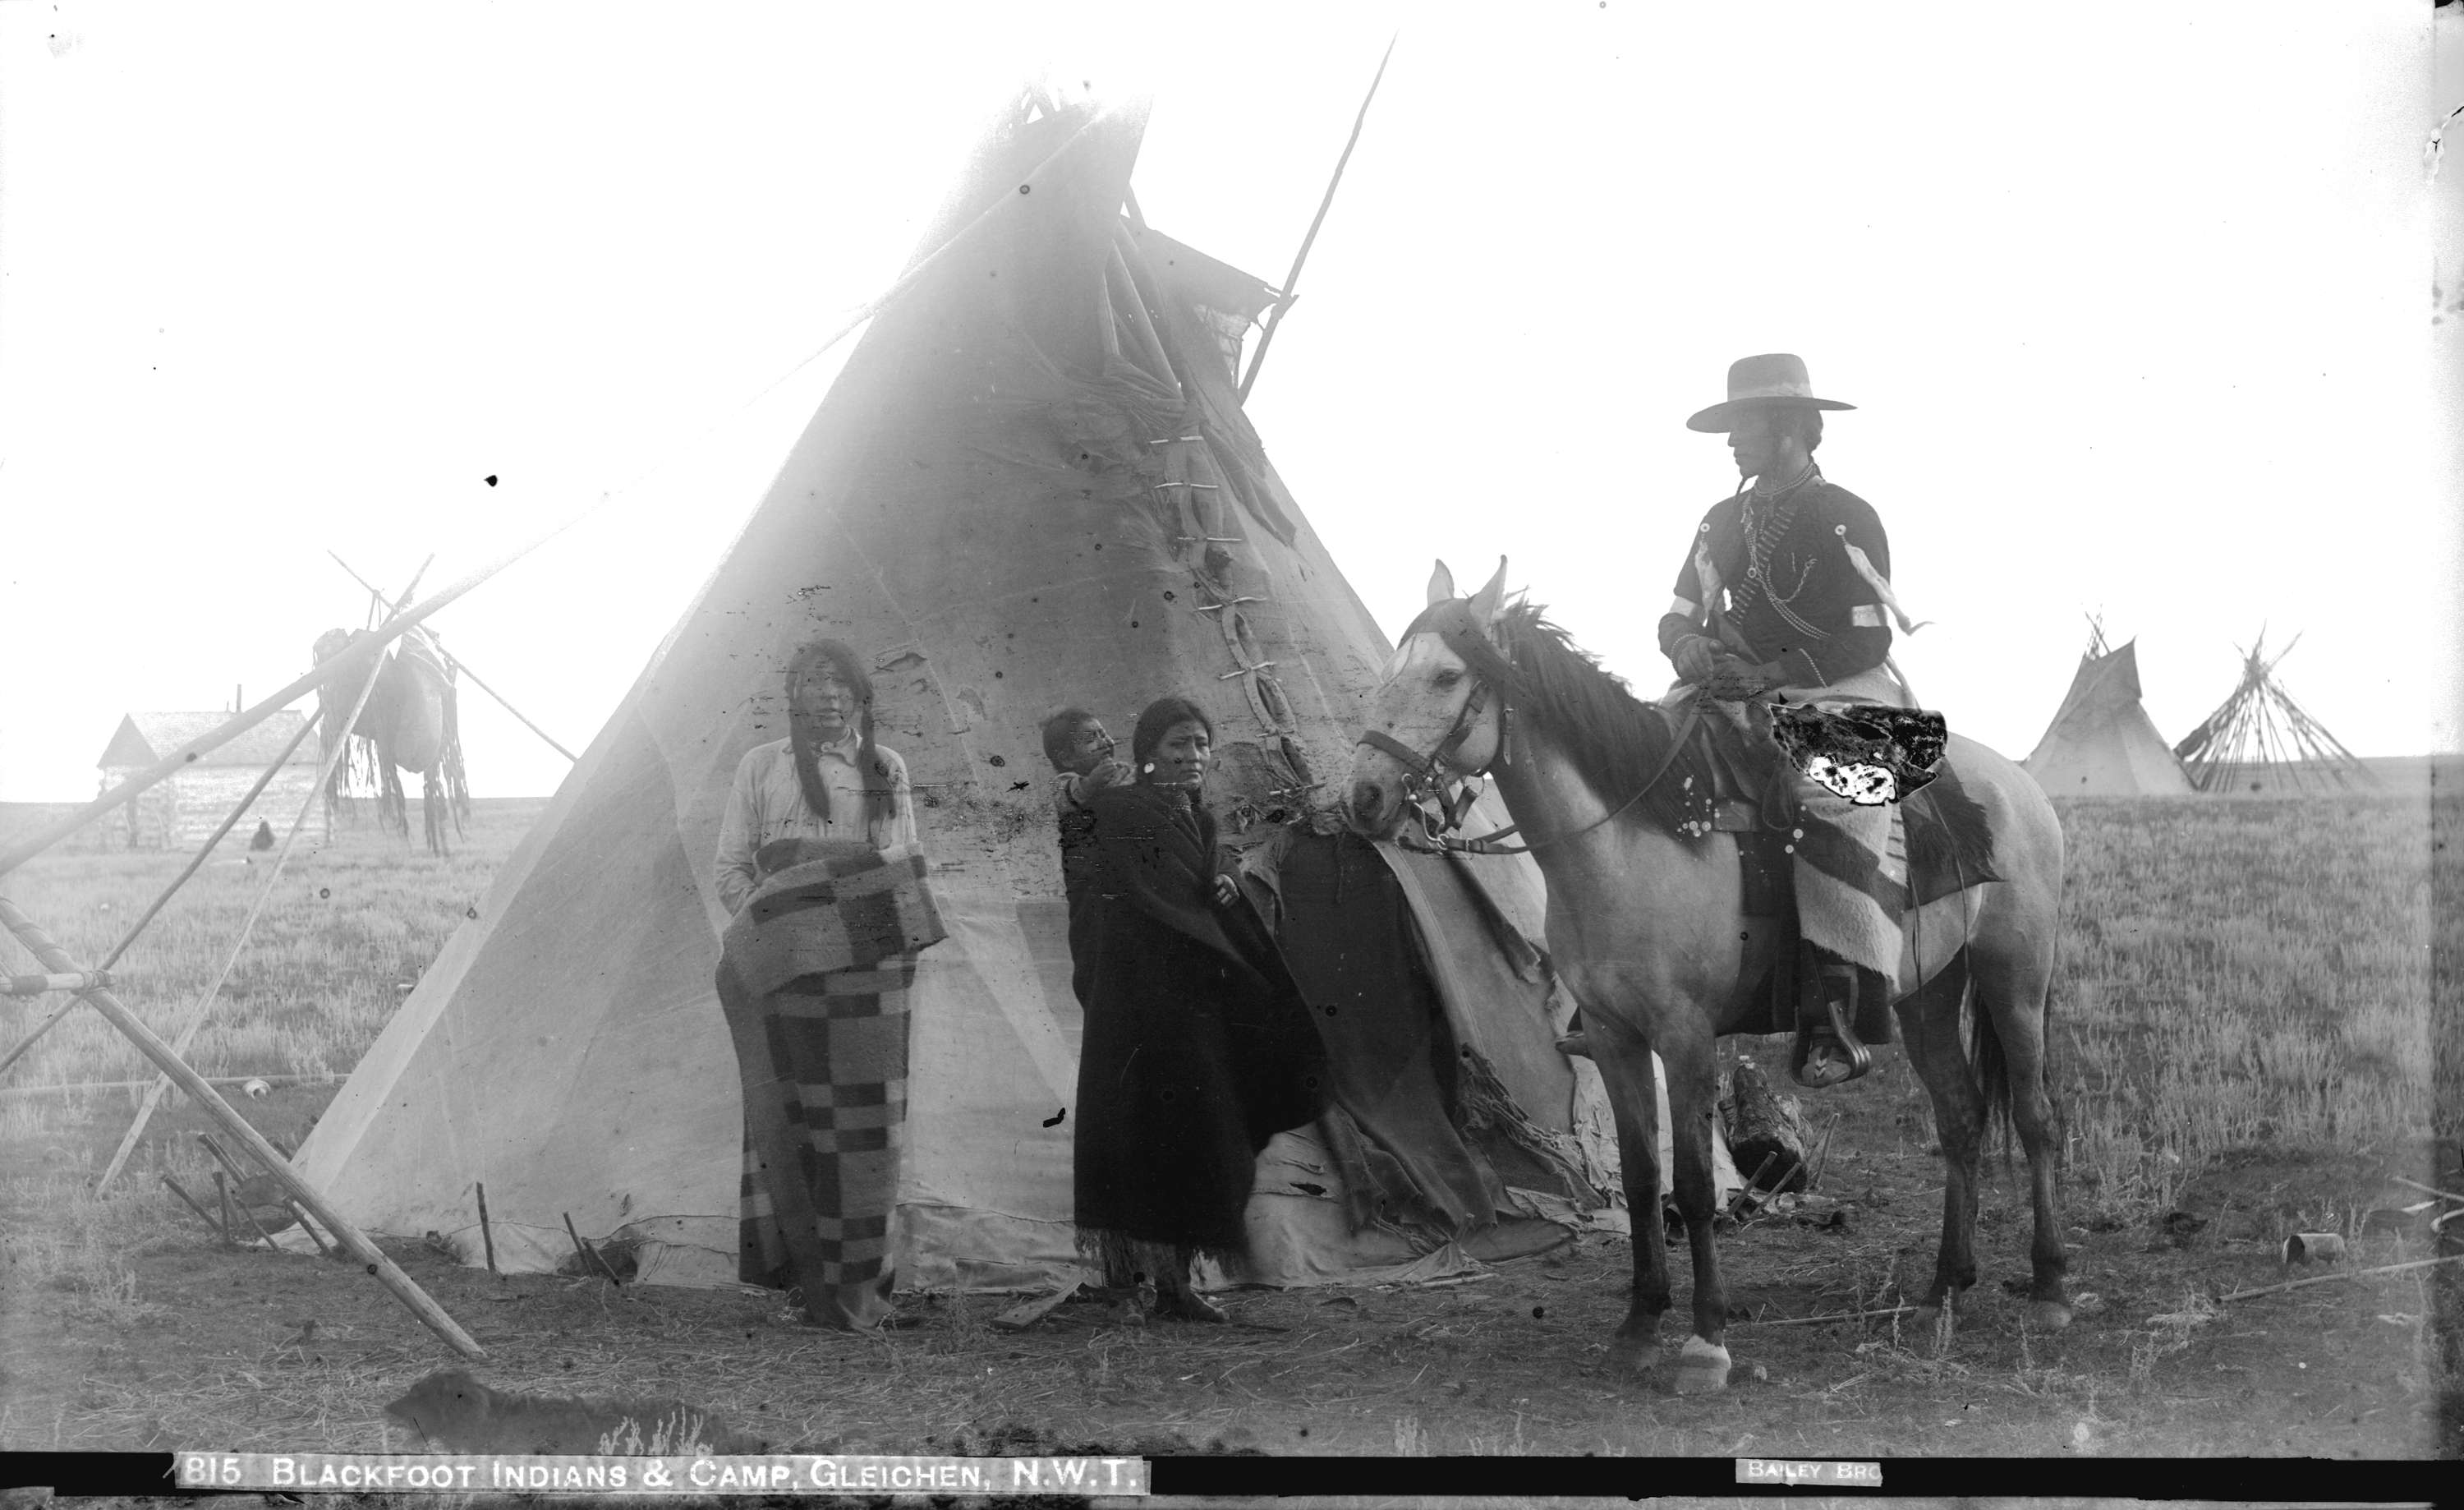 blackfoot indians and camp gleichen n w t city of vancouver